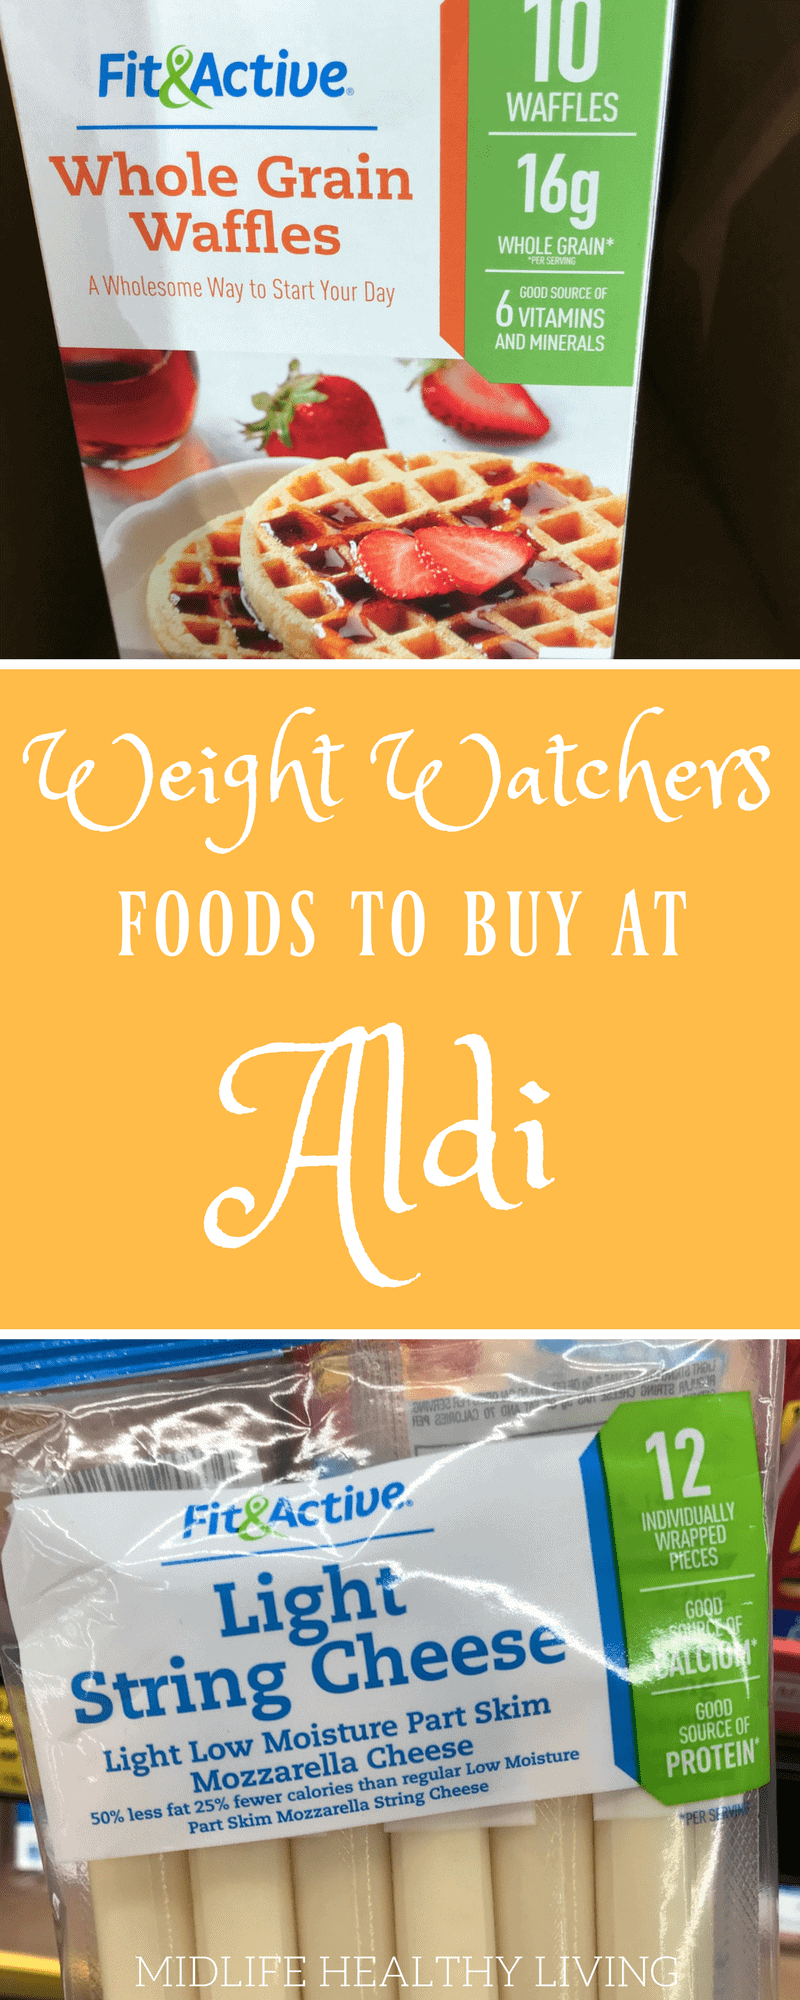 Grocery shopping is not my favorite task. In order to make it easier and more pleasant I like to have a shopping list! Today I'm sharing with you the Weight Watchers foods to buy from Aldi stores. Aldi stores are a great way to save on the foods you love that also happen to be perfect for the Weight Watchers Freestyle program.